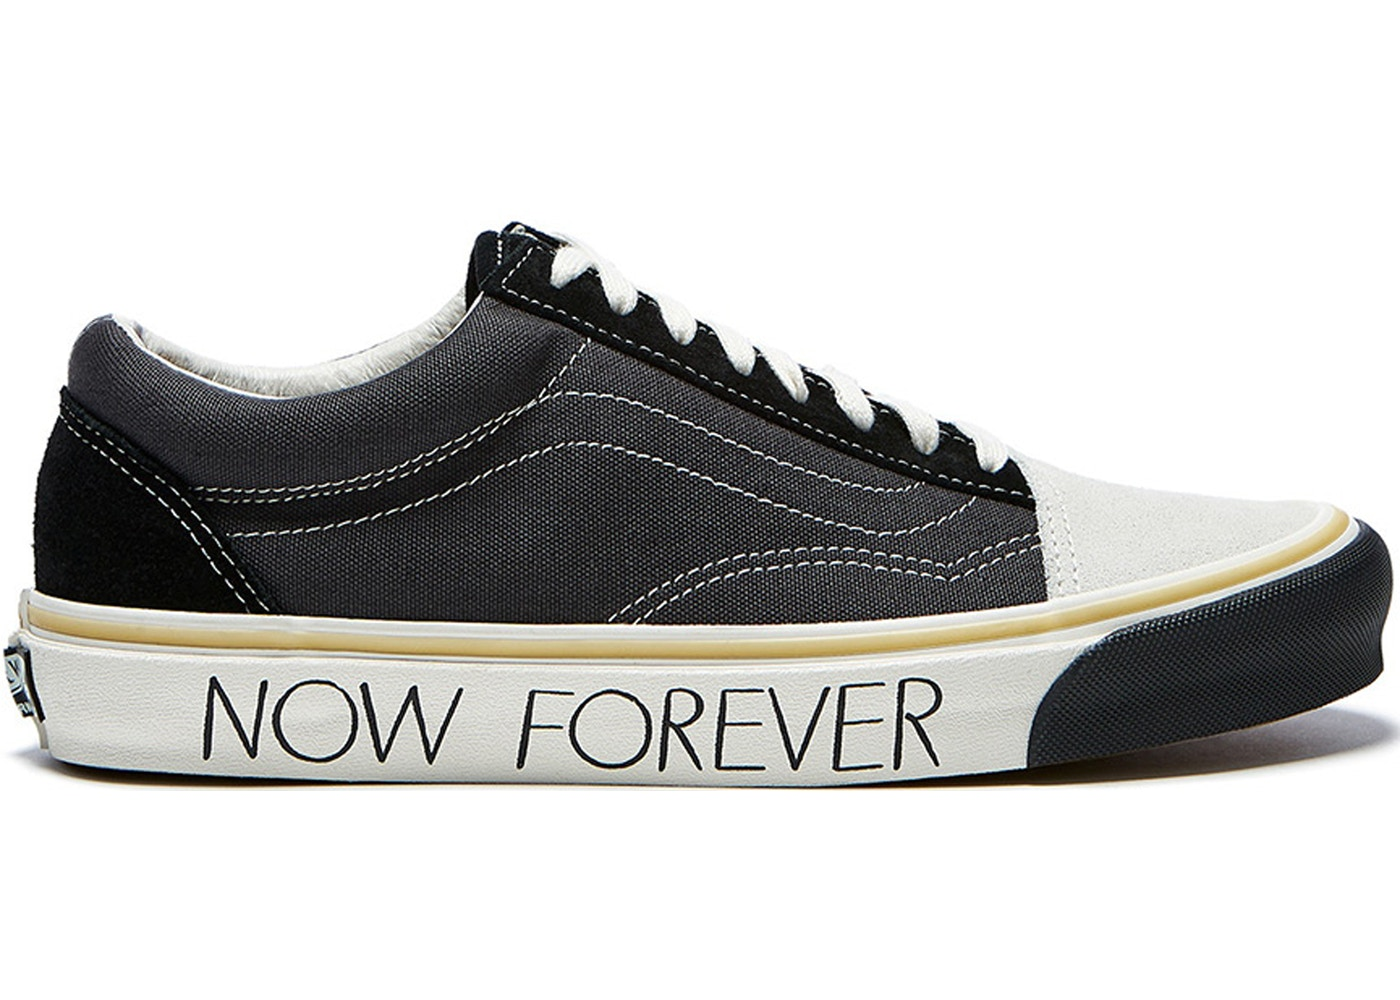 054237da44 Vans Old Skool Wood Wood Now Forever - VN000VOJRZM